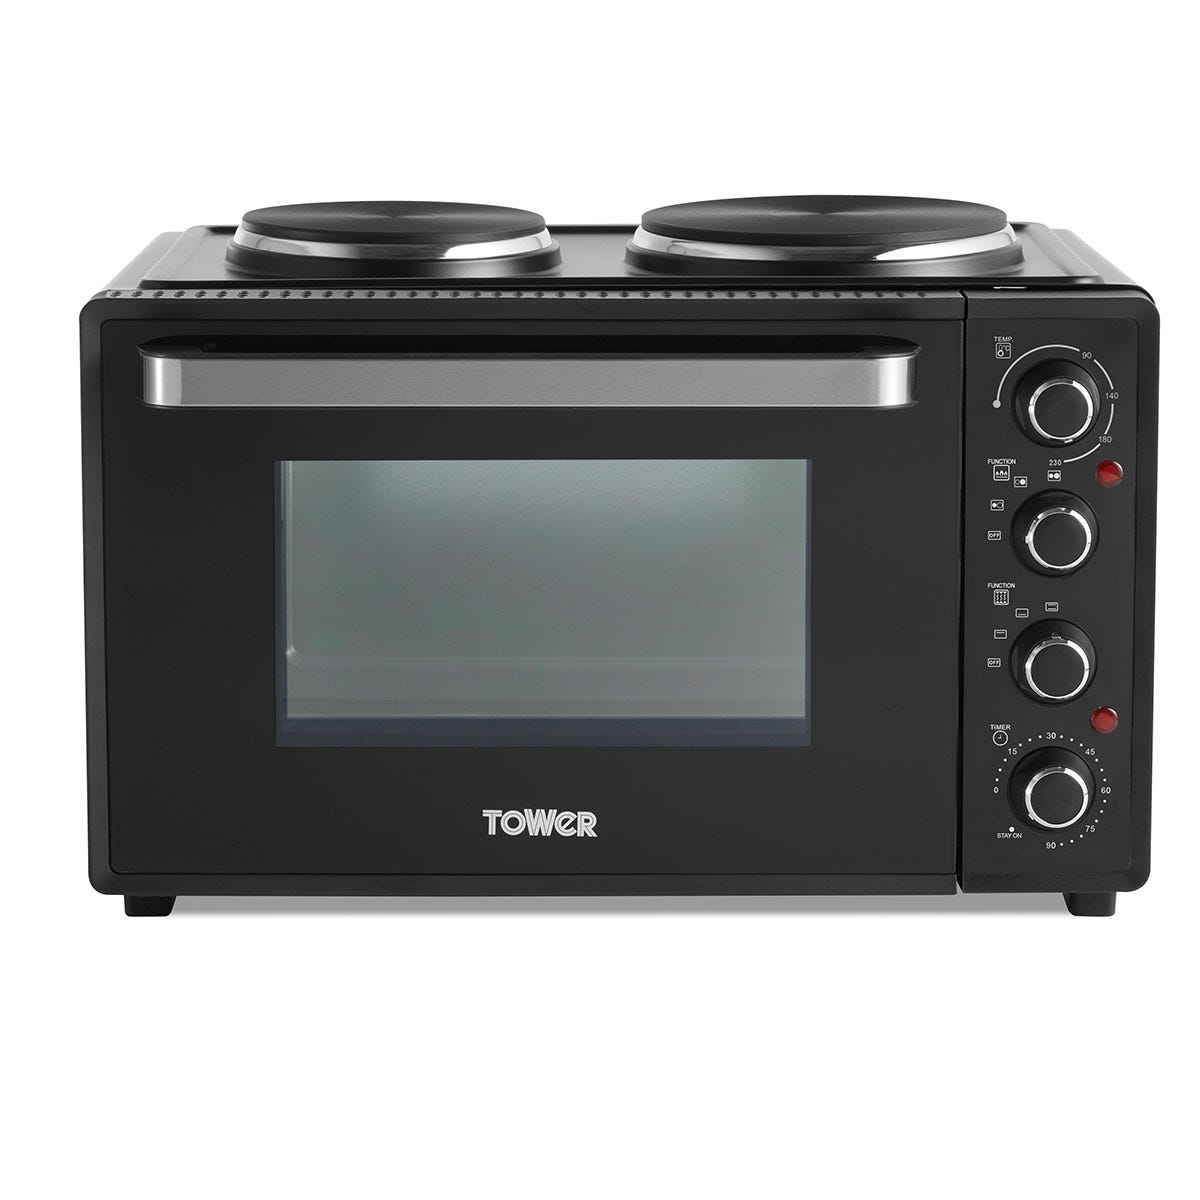 Tower DYT14044 32L Mini Oven with Hobs - Black